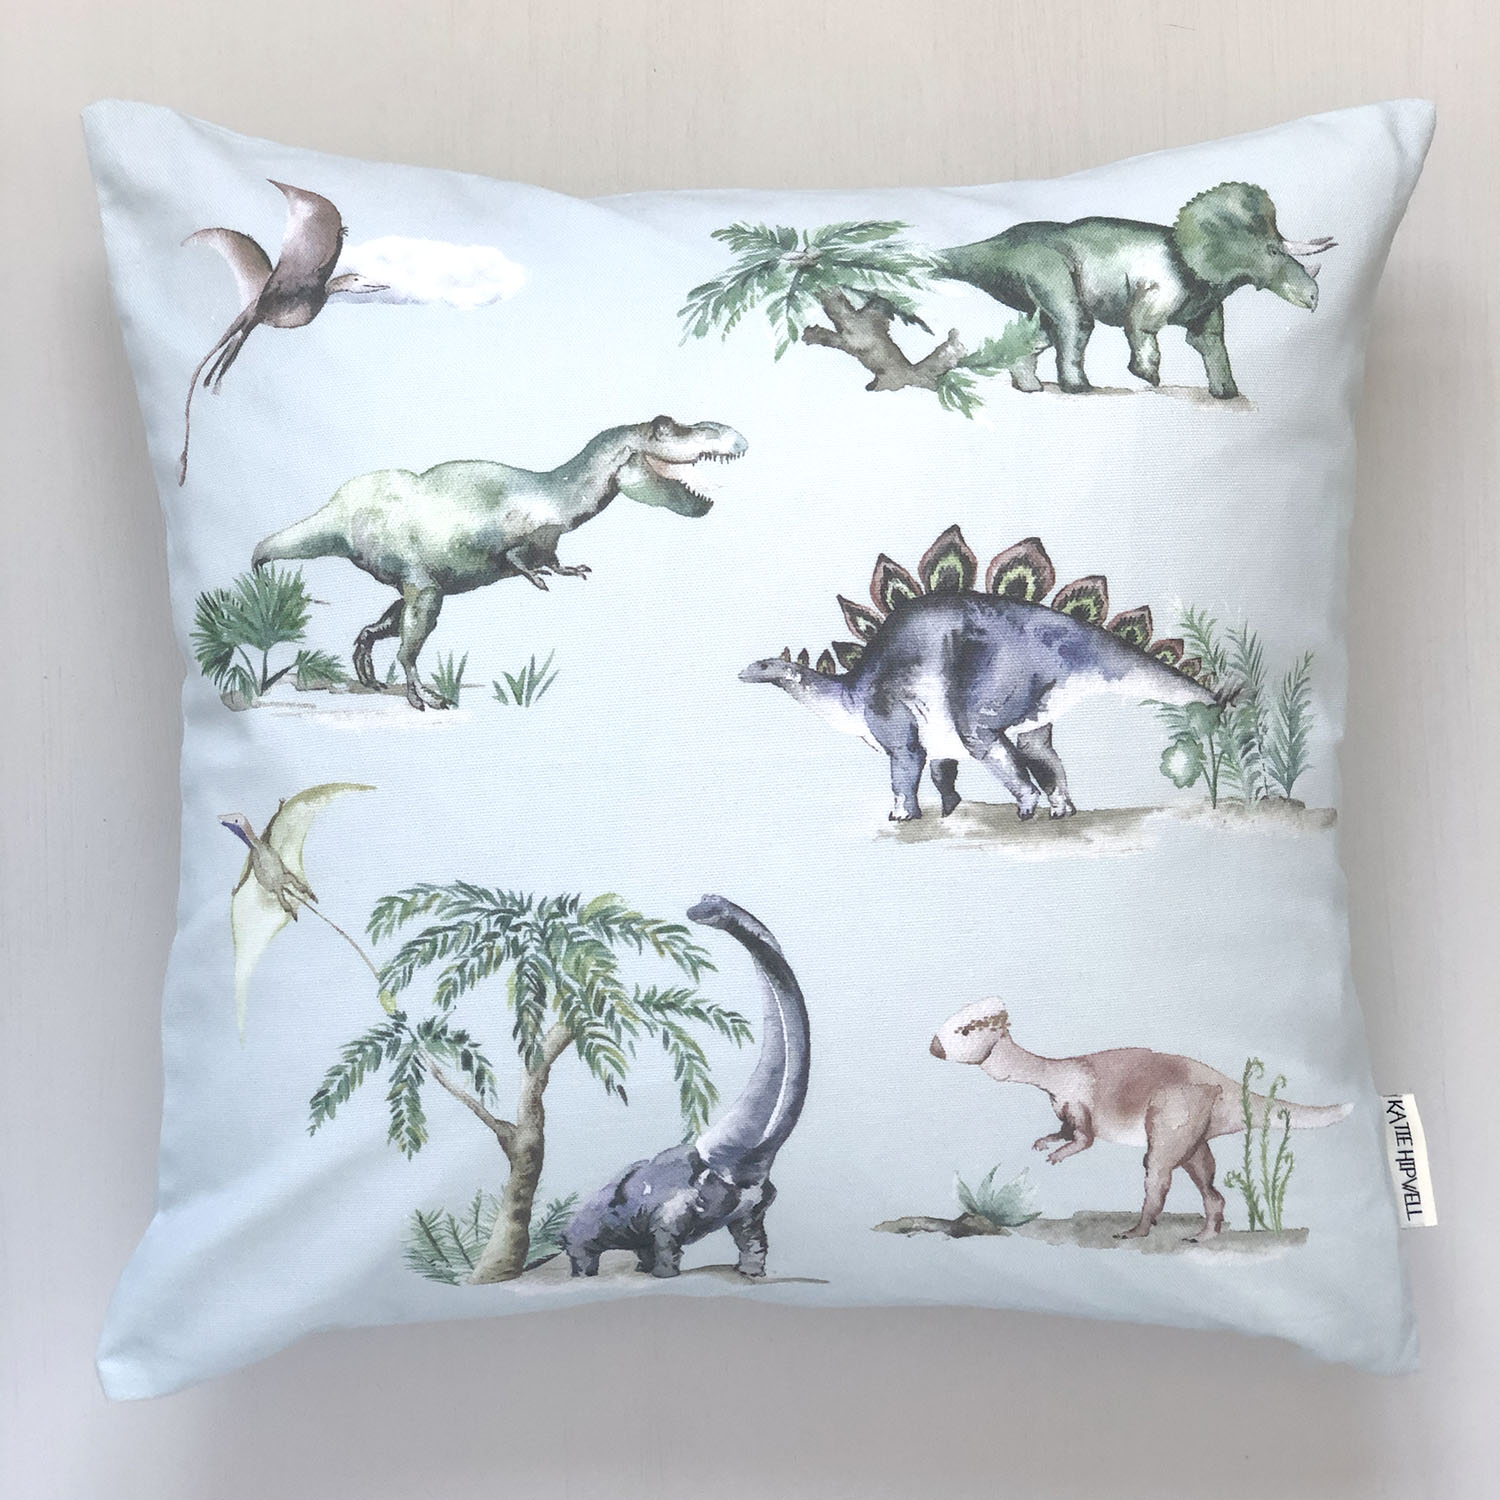 Dinosaurs Sky Cushion